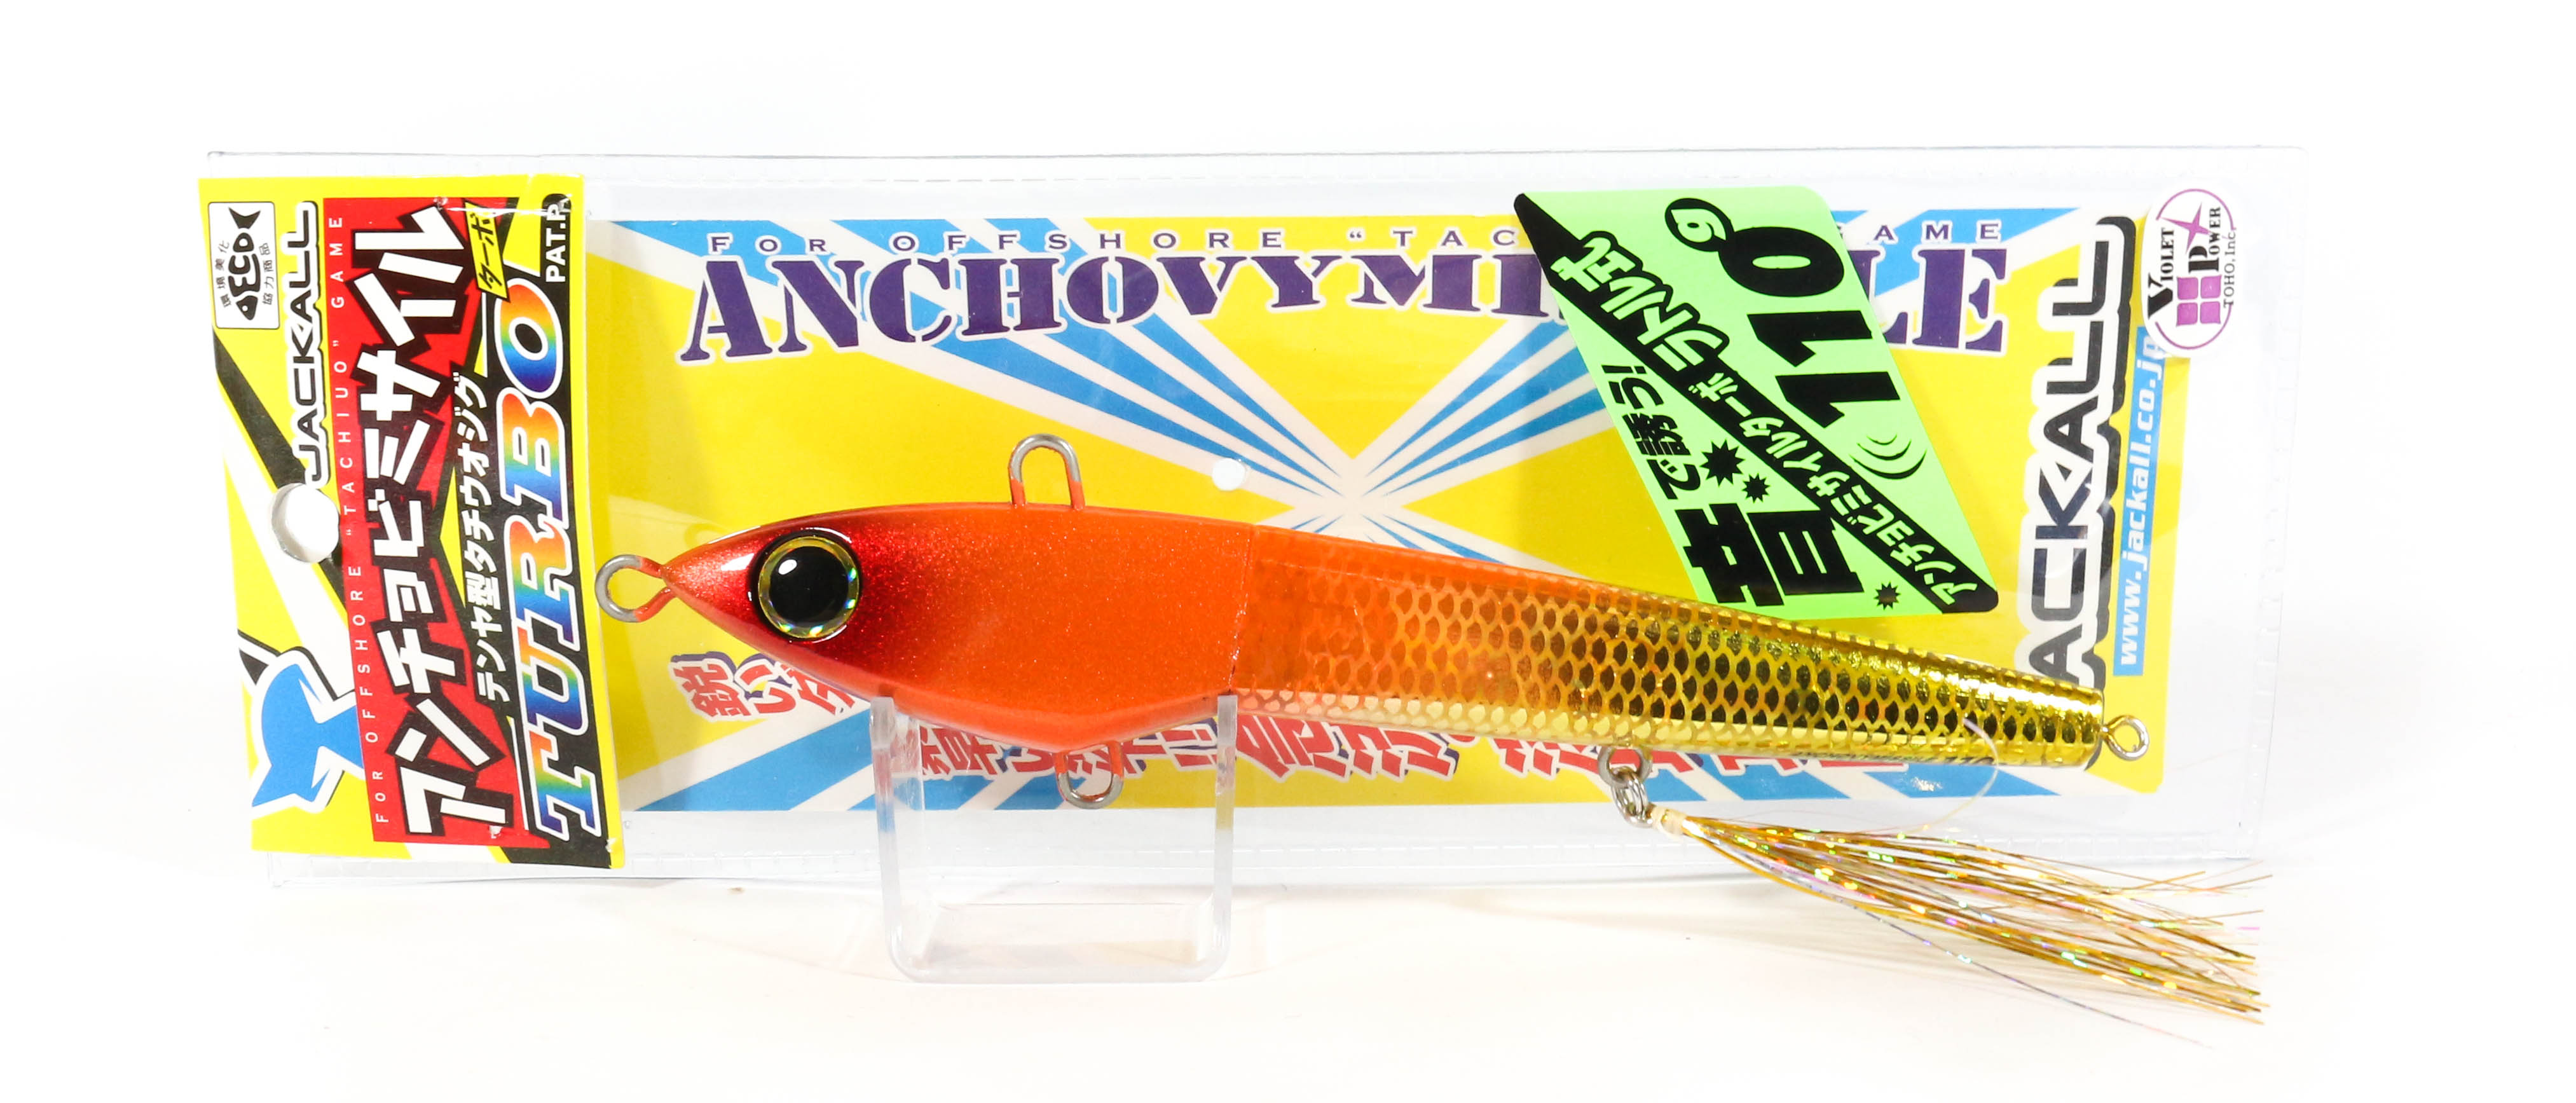 Sale Jackall Anchovy Missile Turbo RattleShiki Jig 130 grams Orange Gold (5528)